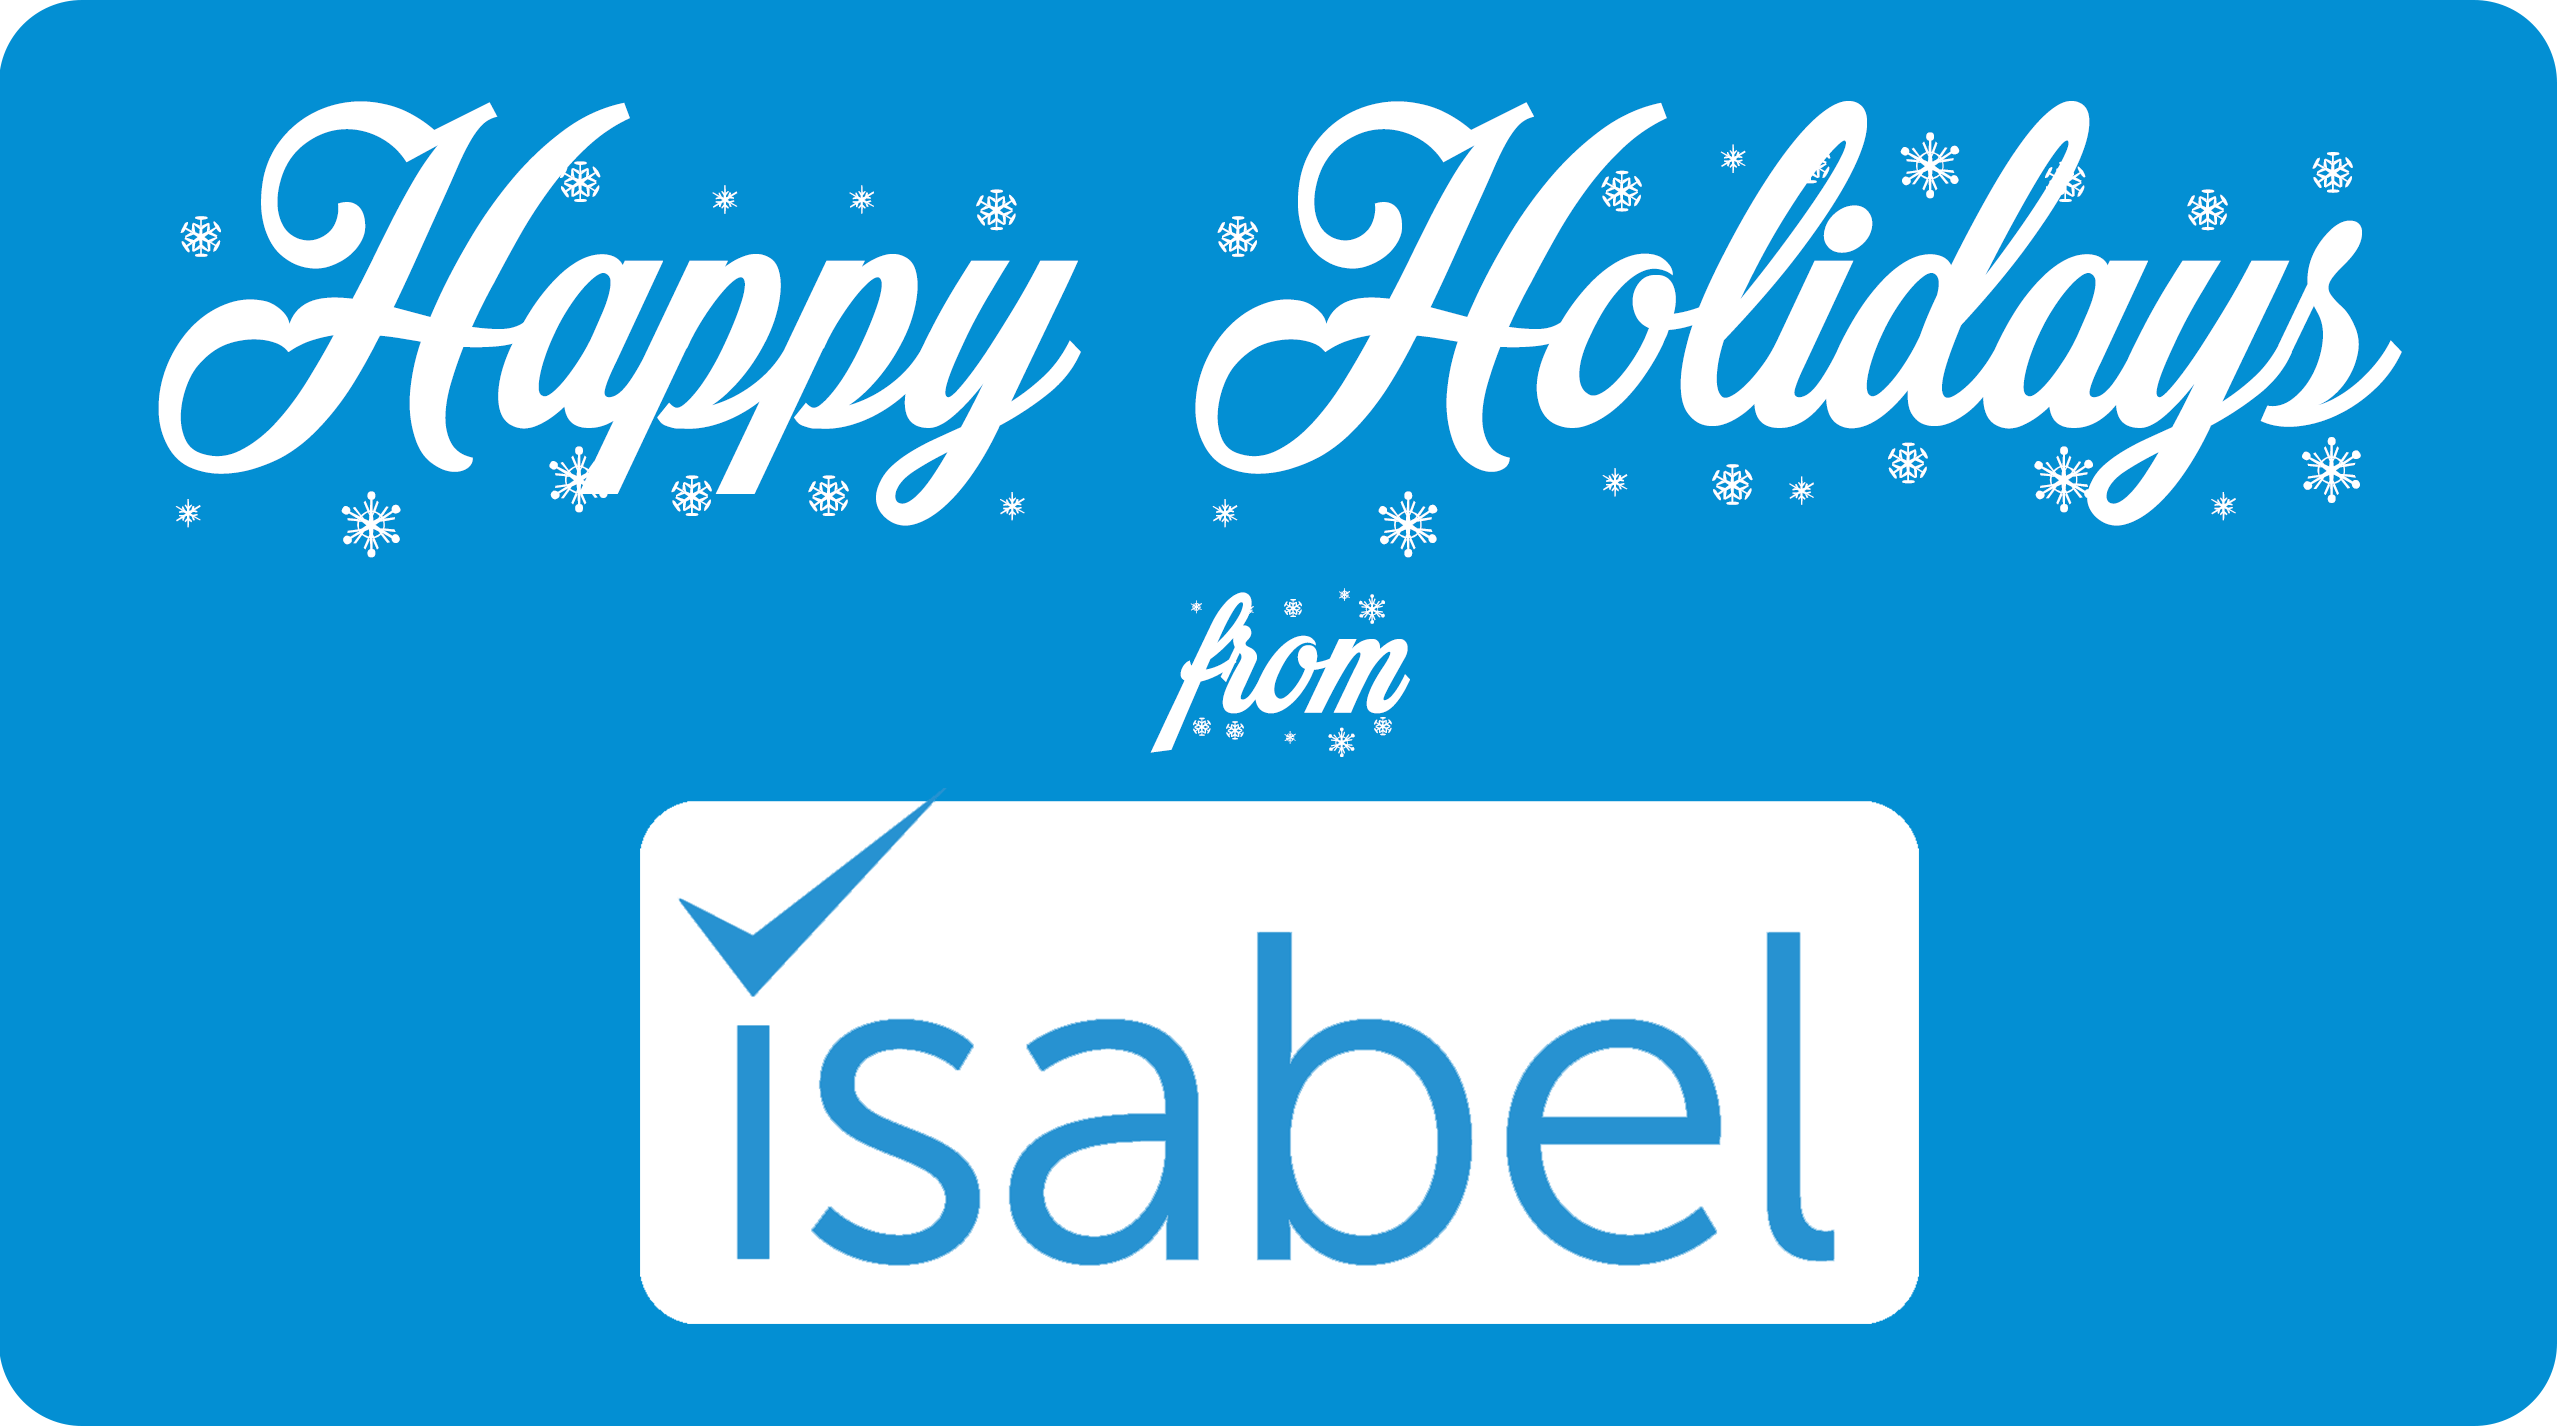 Happy-holidays-from-isabel.png